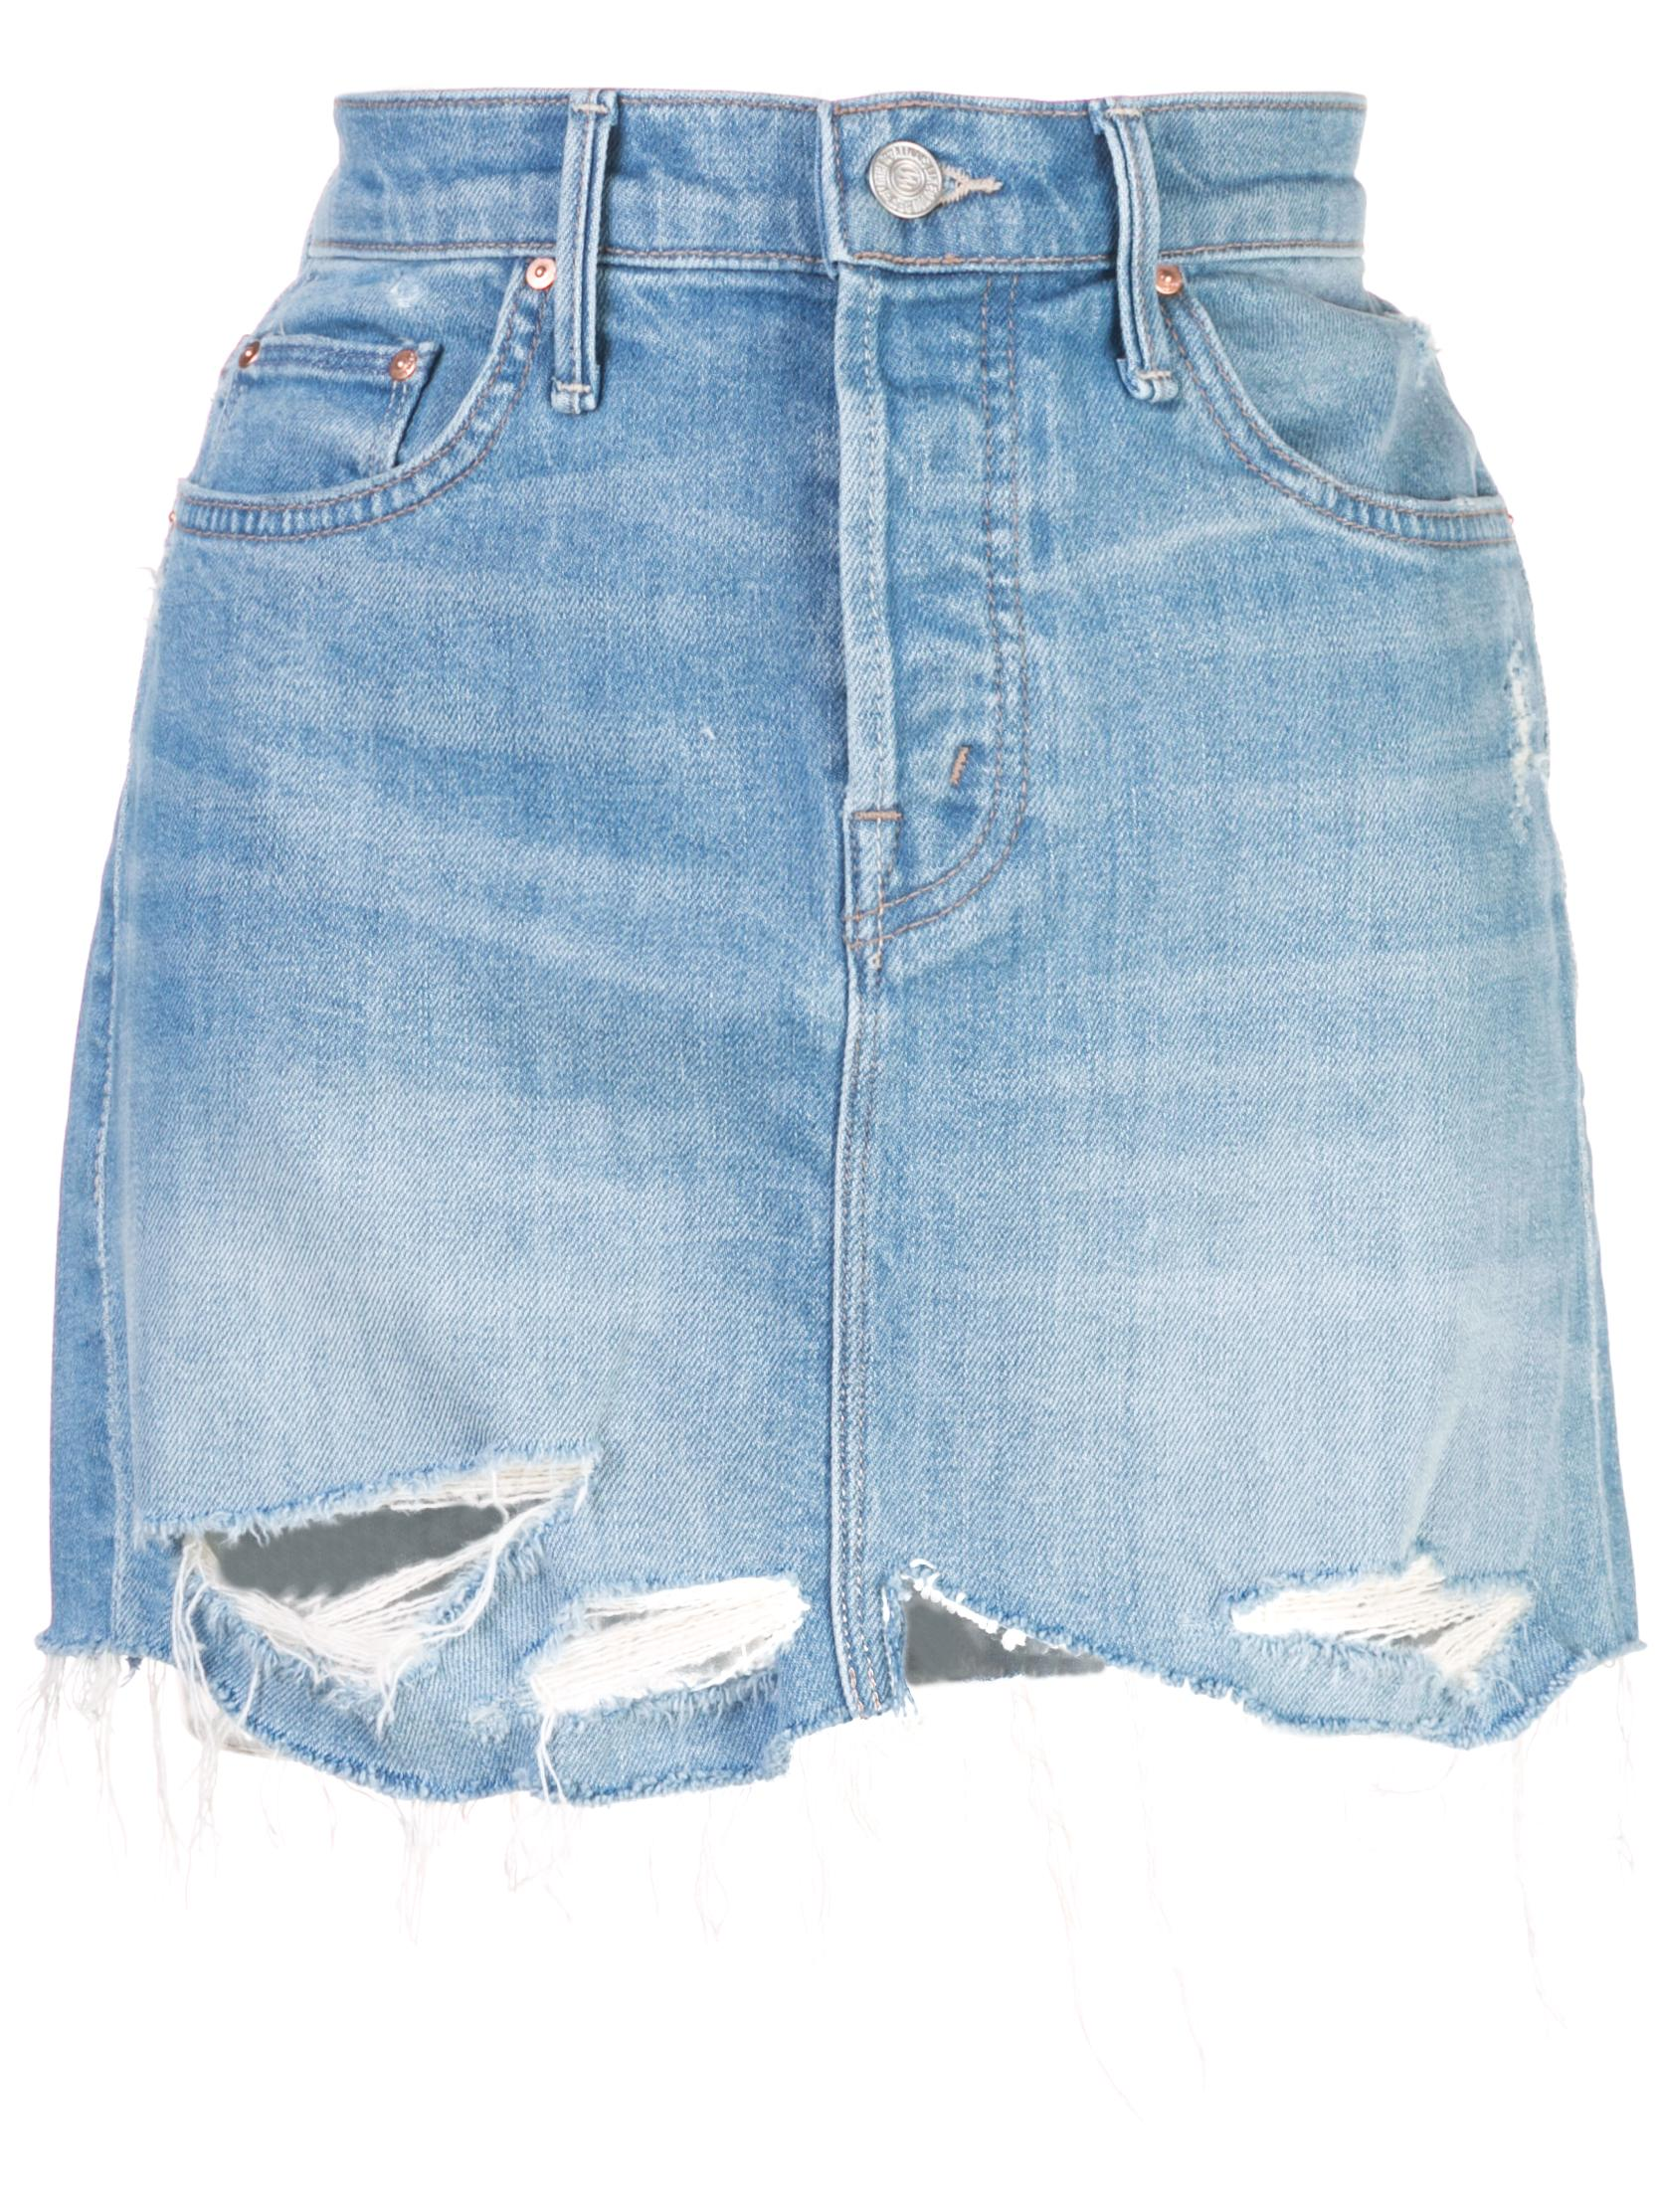 The Vagabond Mini Fray Denim Skirt